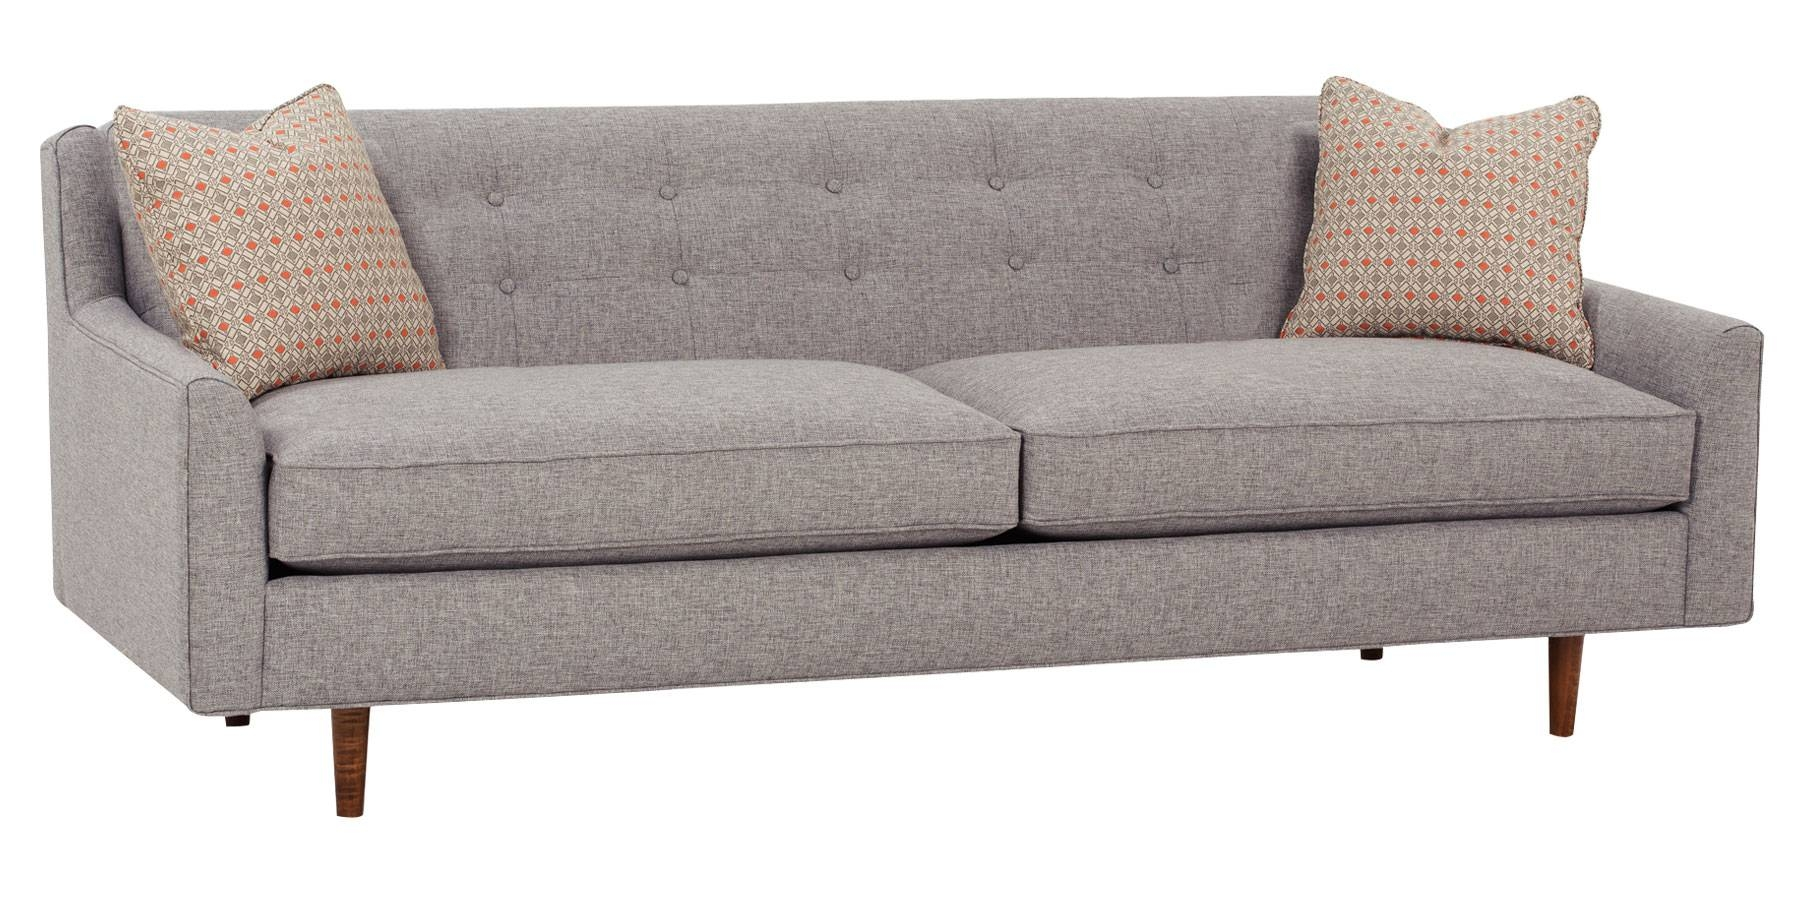 New Ideas Modern Couch With Mid Century Modern Sofa Bed Mid regarding Danish Modern Sofas (Image 11 of 15)